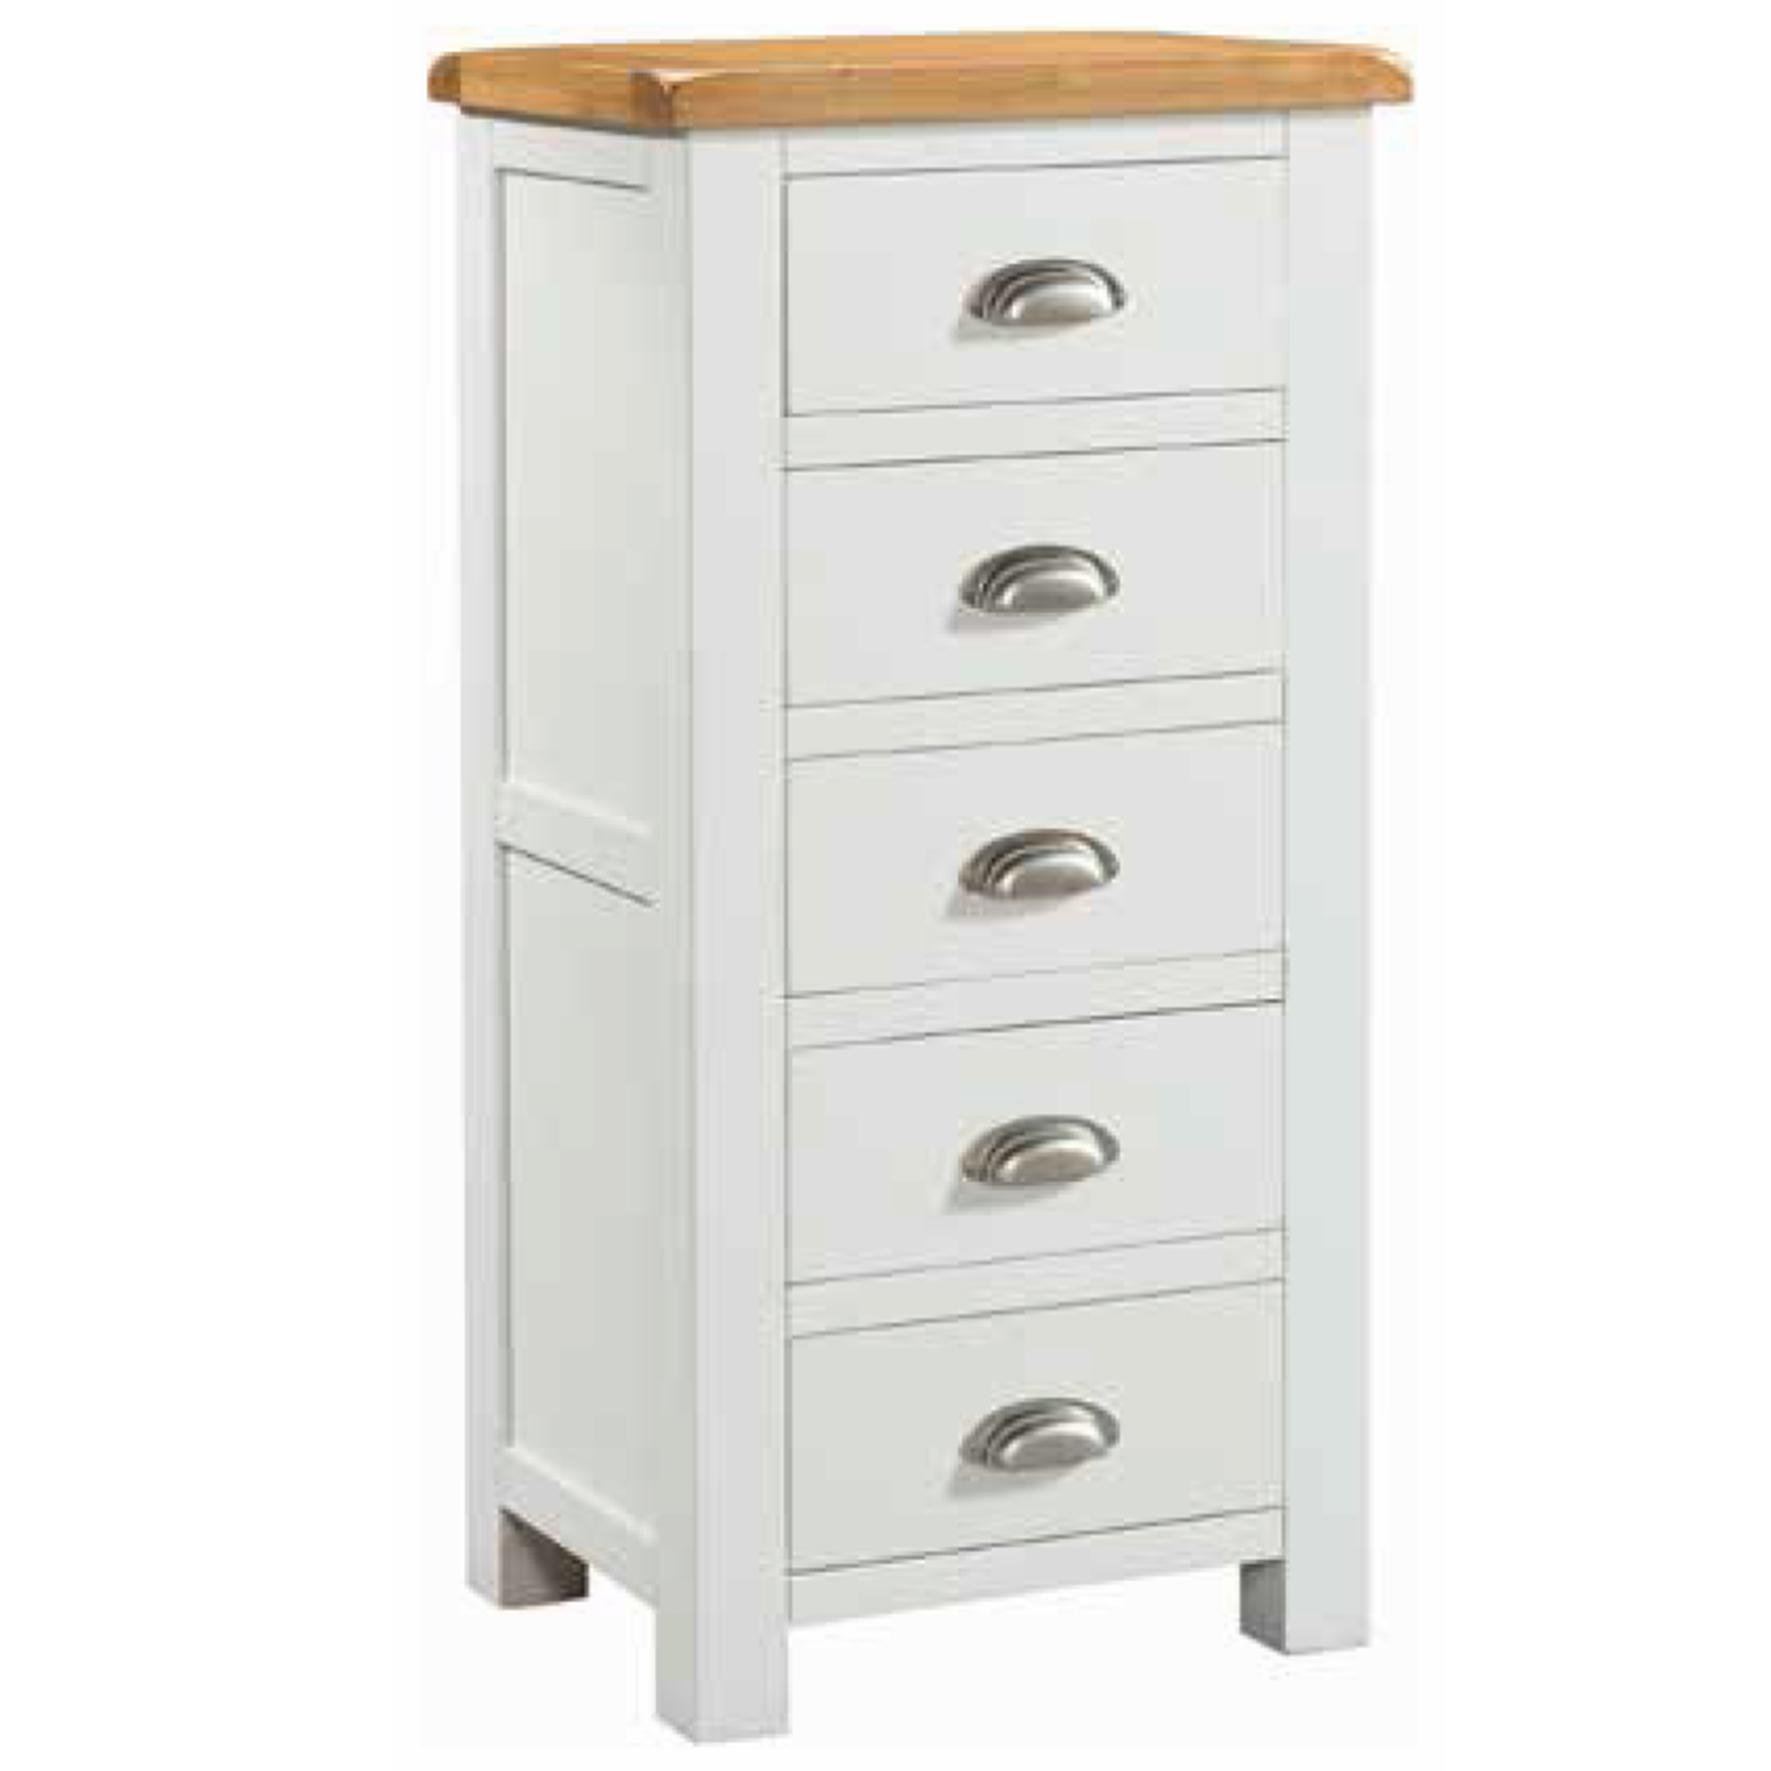 Halle Soft Cotton Tall 5 Drawer Chest